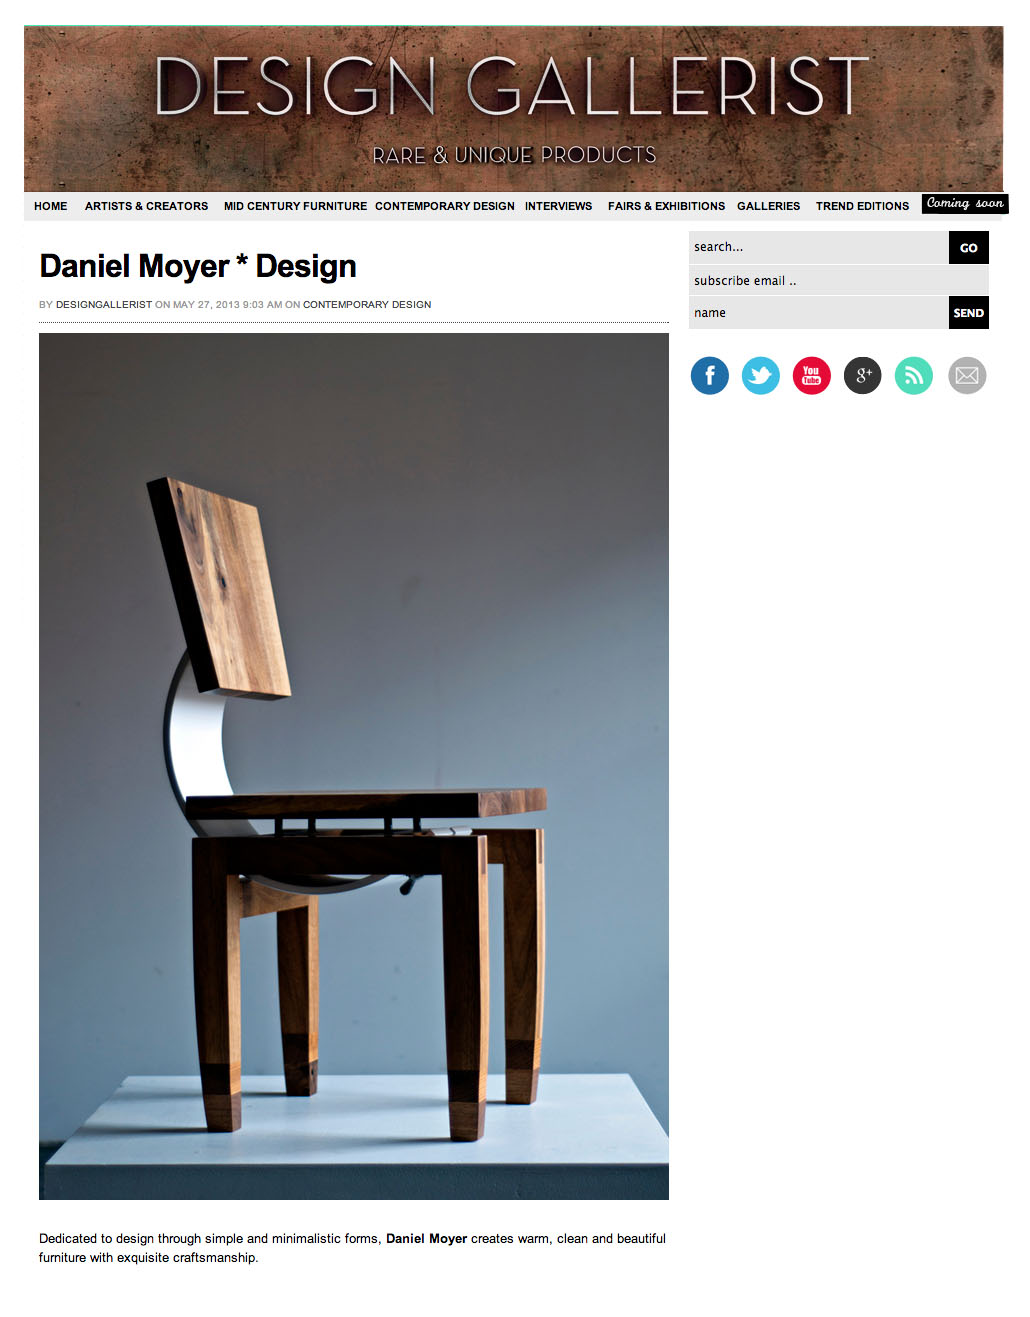 DESIGN GALLERIST  27 may 2013  [click to view the original post]